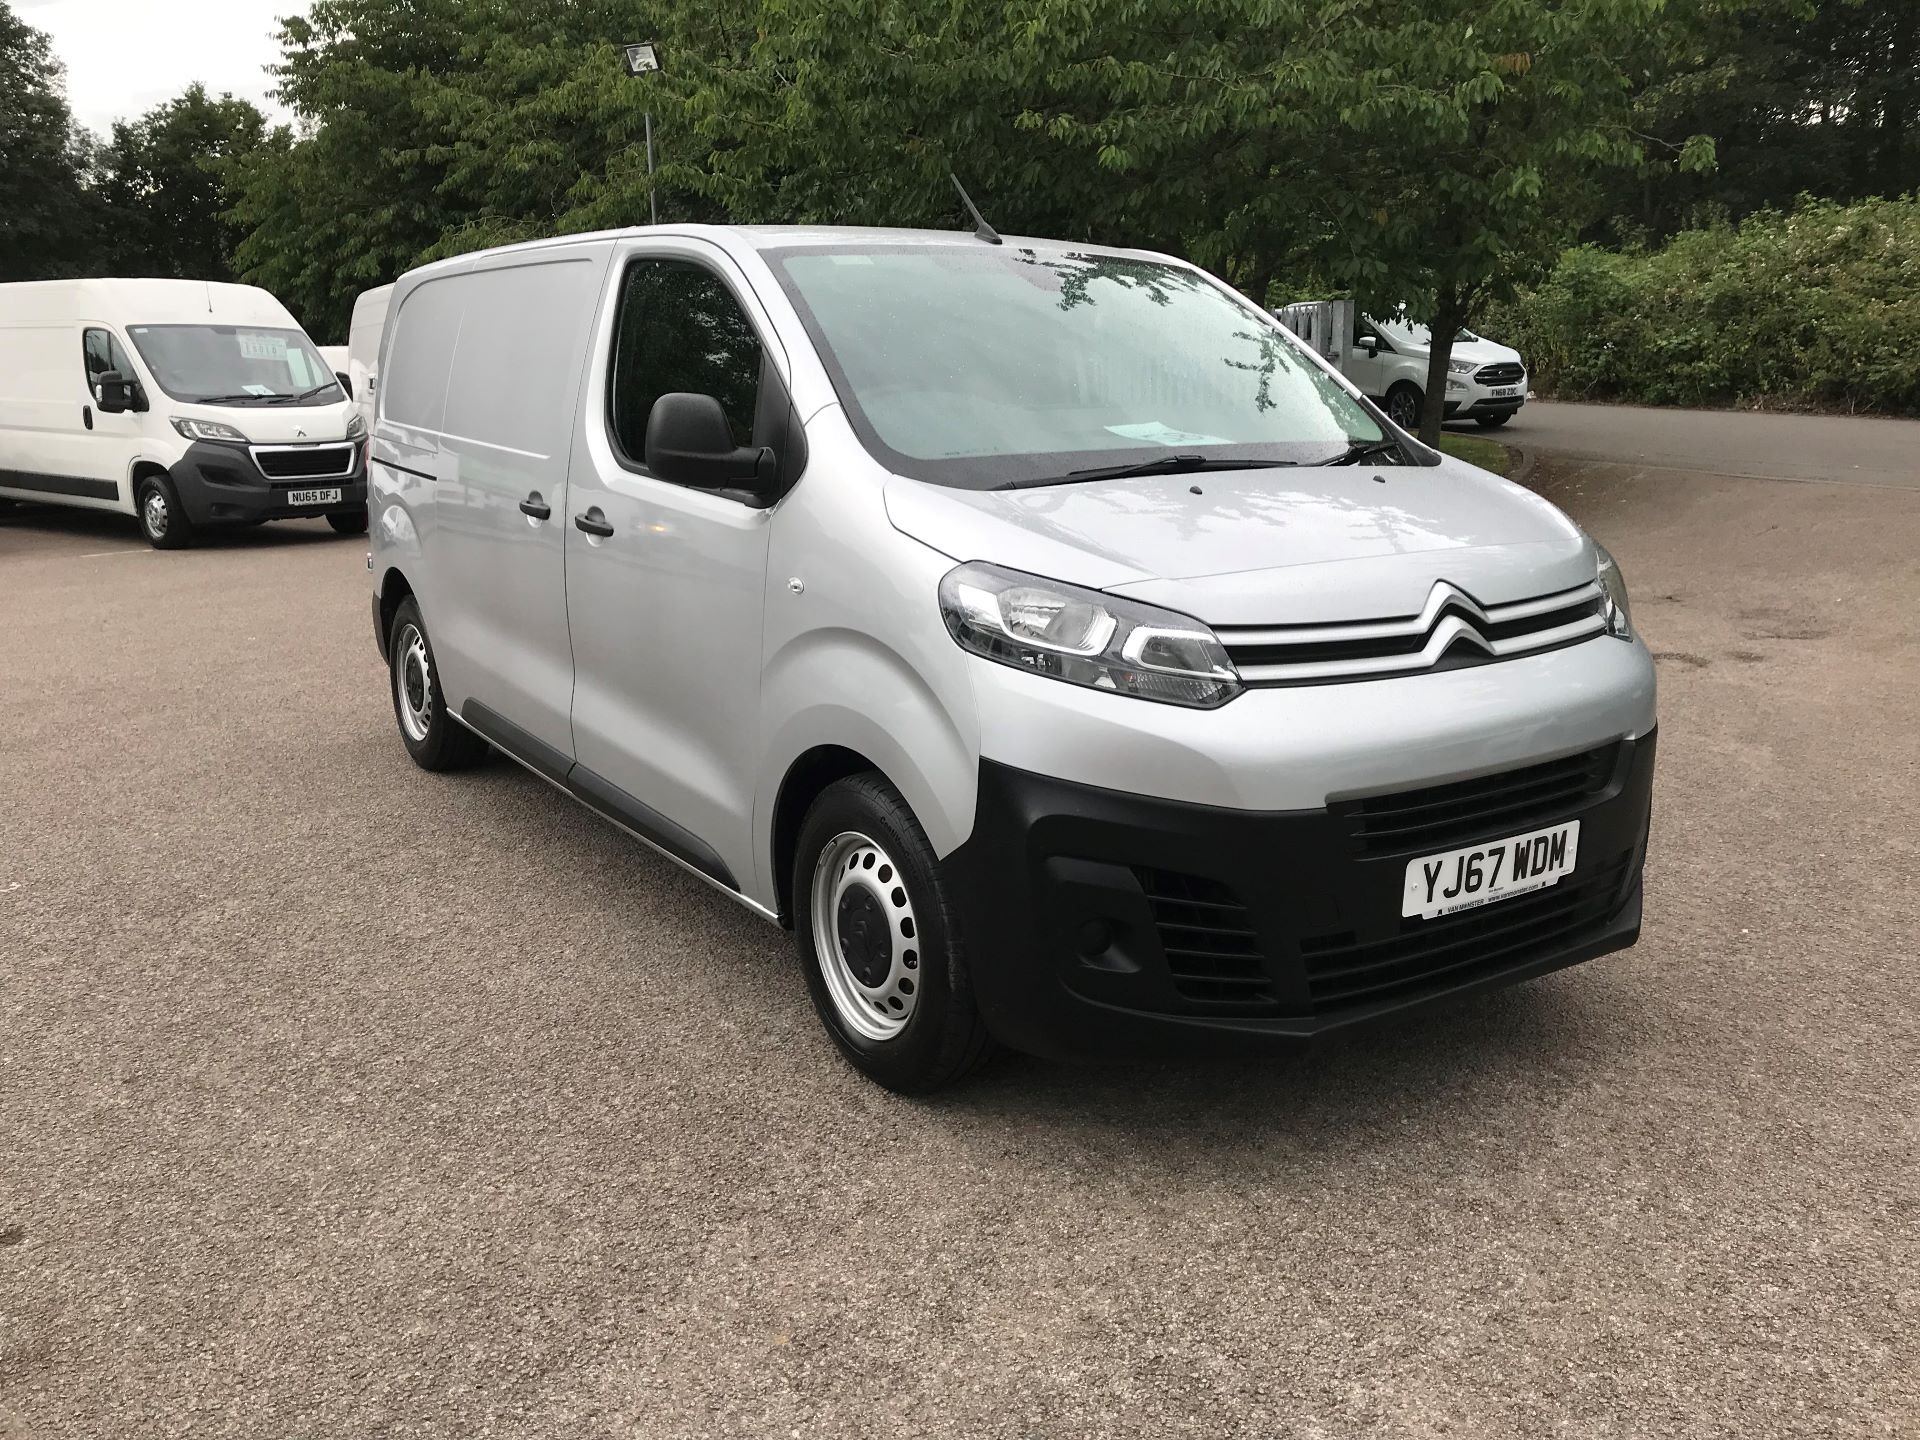 2017 Citroen Dispatch 1000 1.6 Bluehdi 95 Van Enterprise (YJ67WDM)